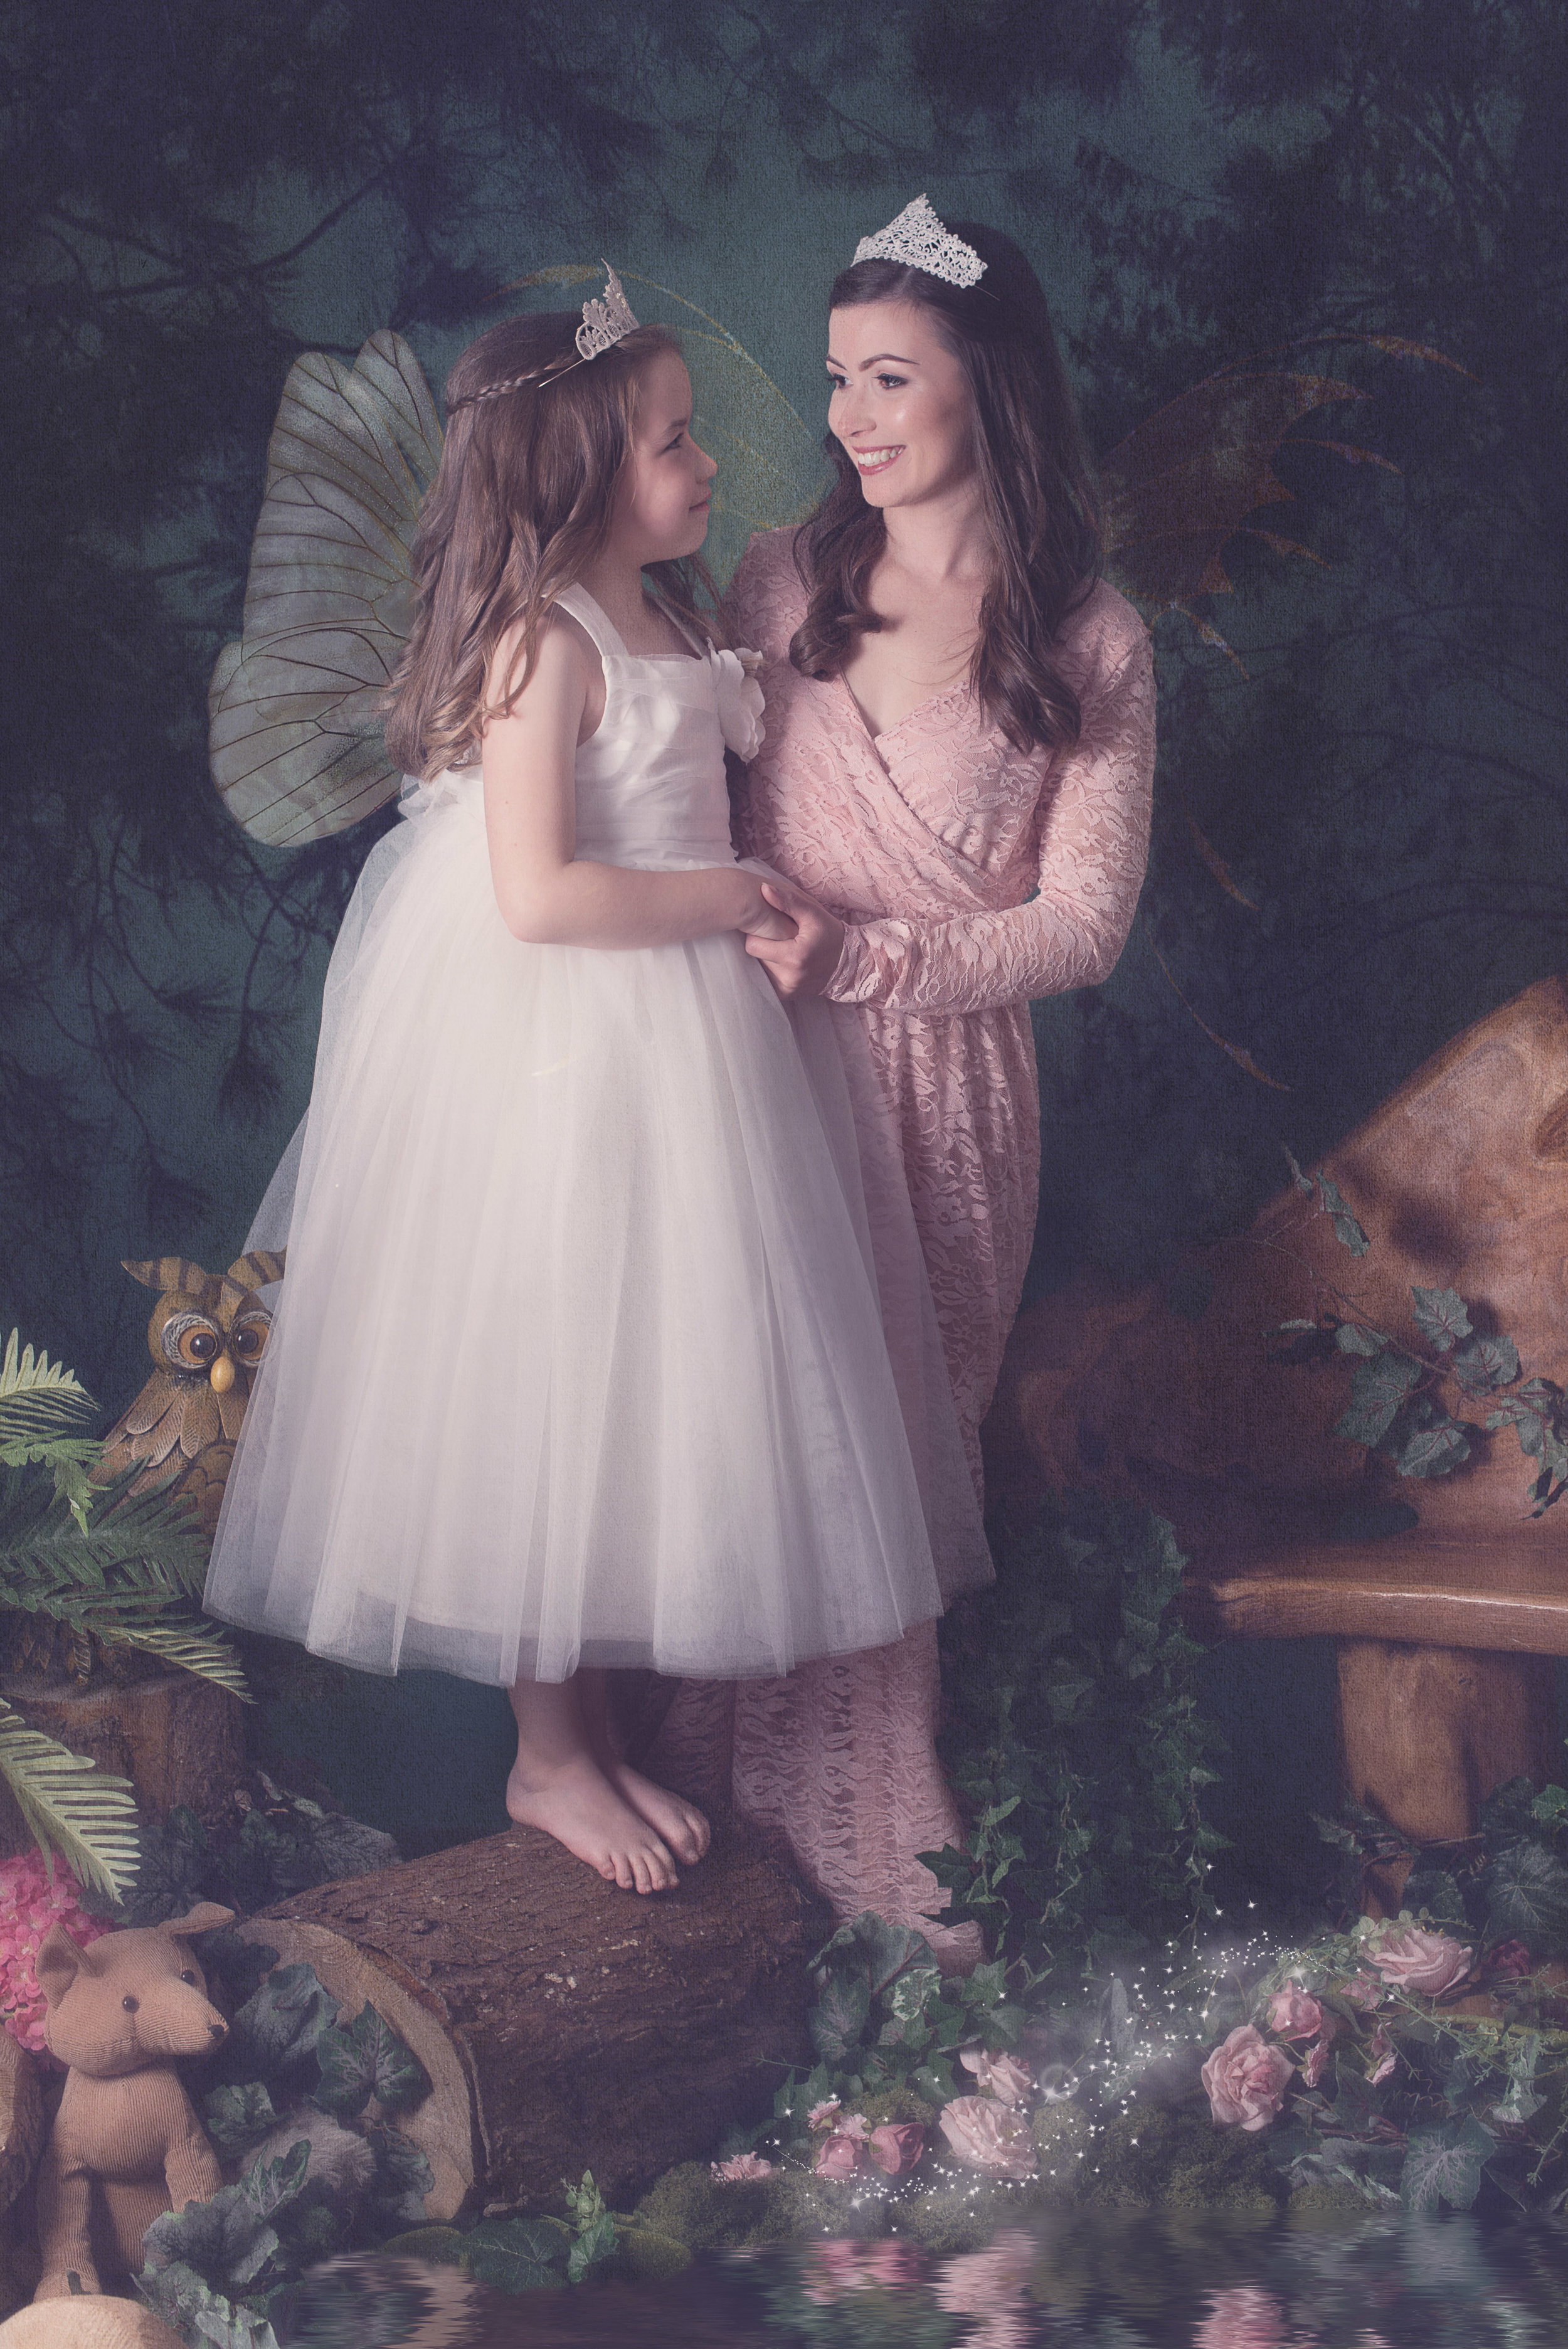 An enchanting and magical photoshoot experience -